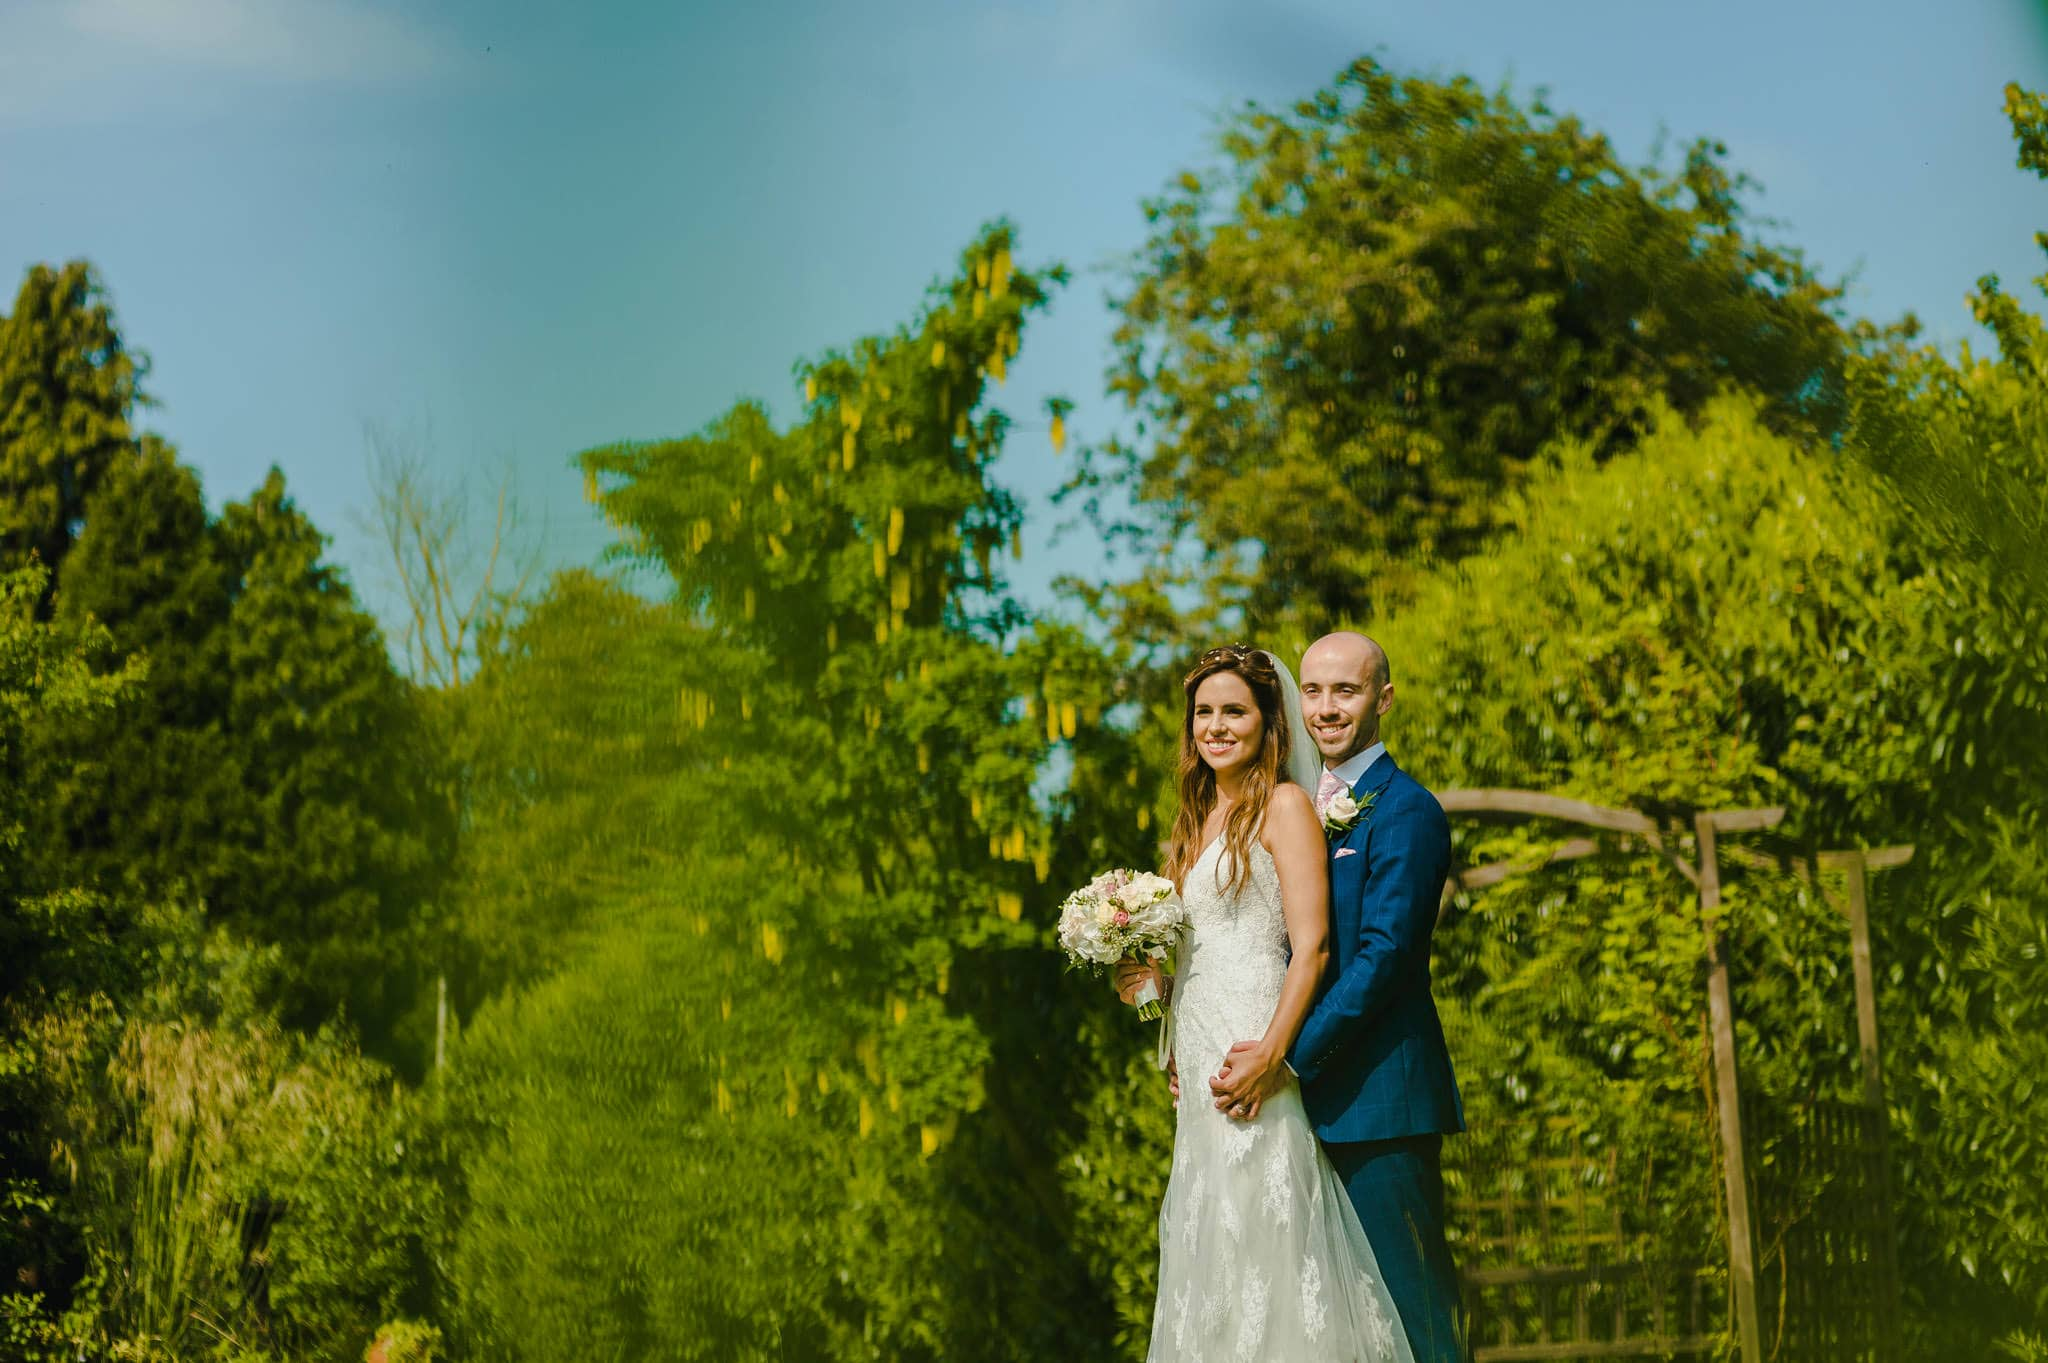 wedding at redhouse barn 129 - Wedding at Redhouse Barn in Stoke Prior, Worcestershire